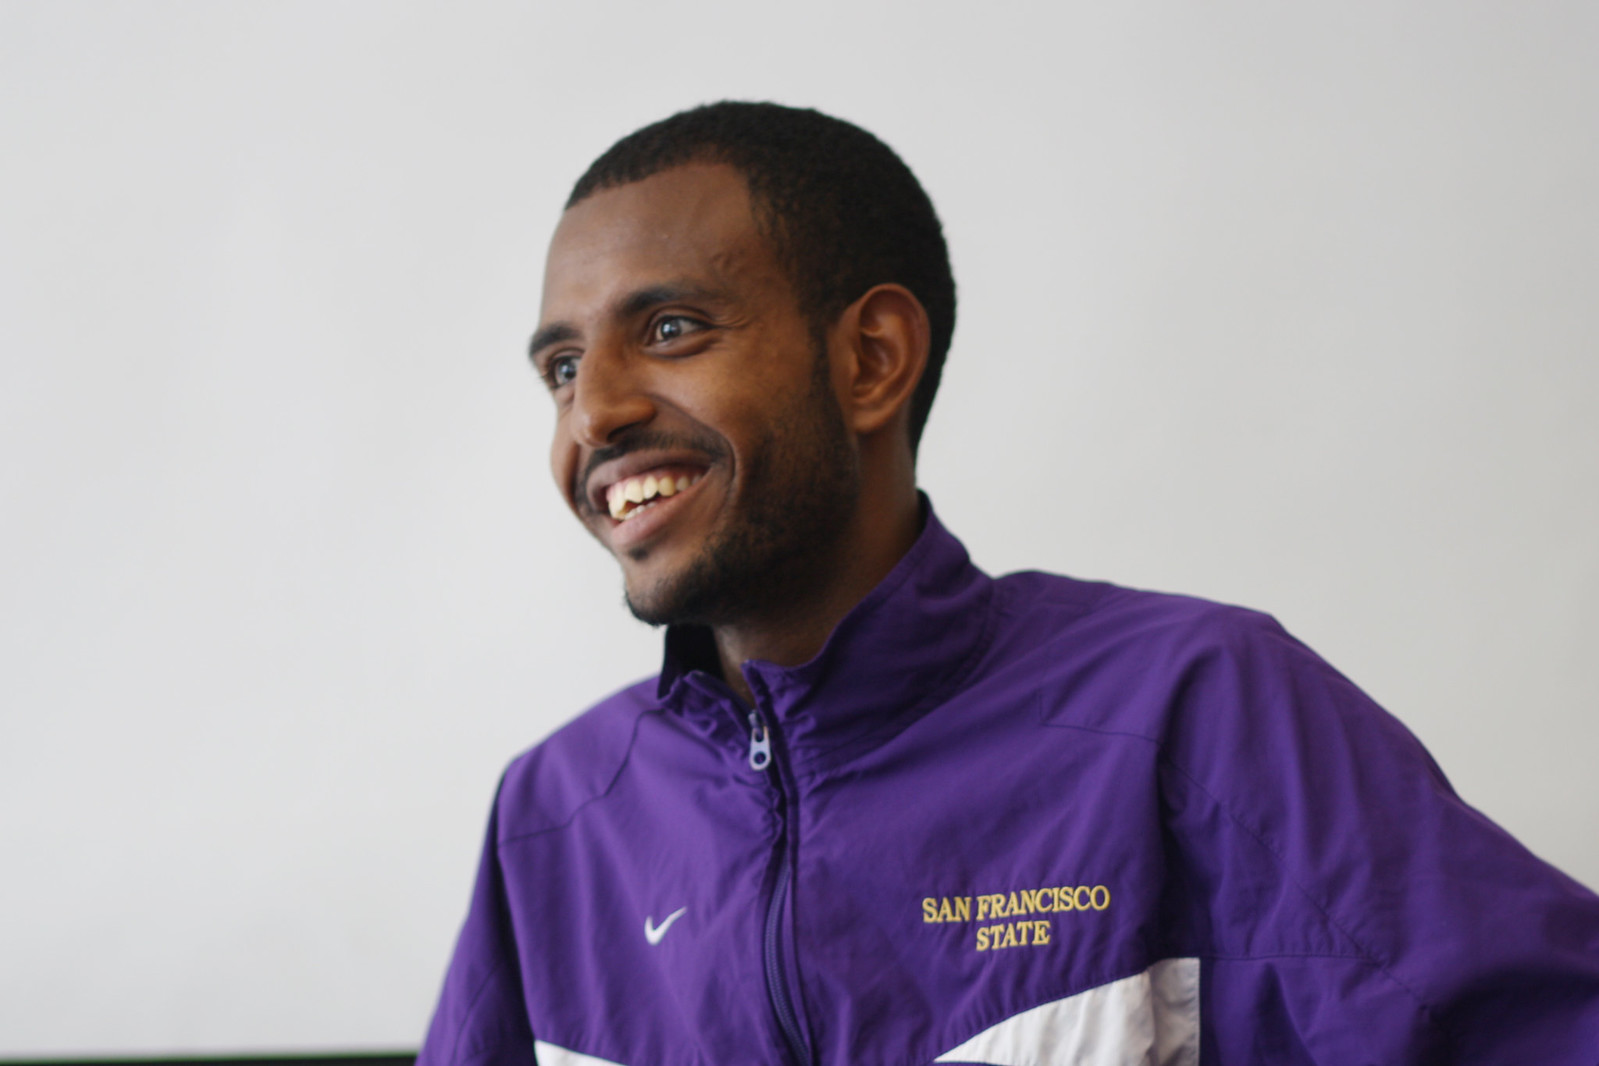 Senior cross country runner Bruk Assefa being interviewed in the gymnasium conference room on August 29, 2013. Photo by Tony Santos / Xpress